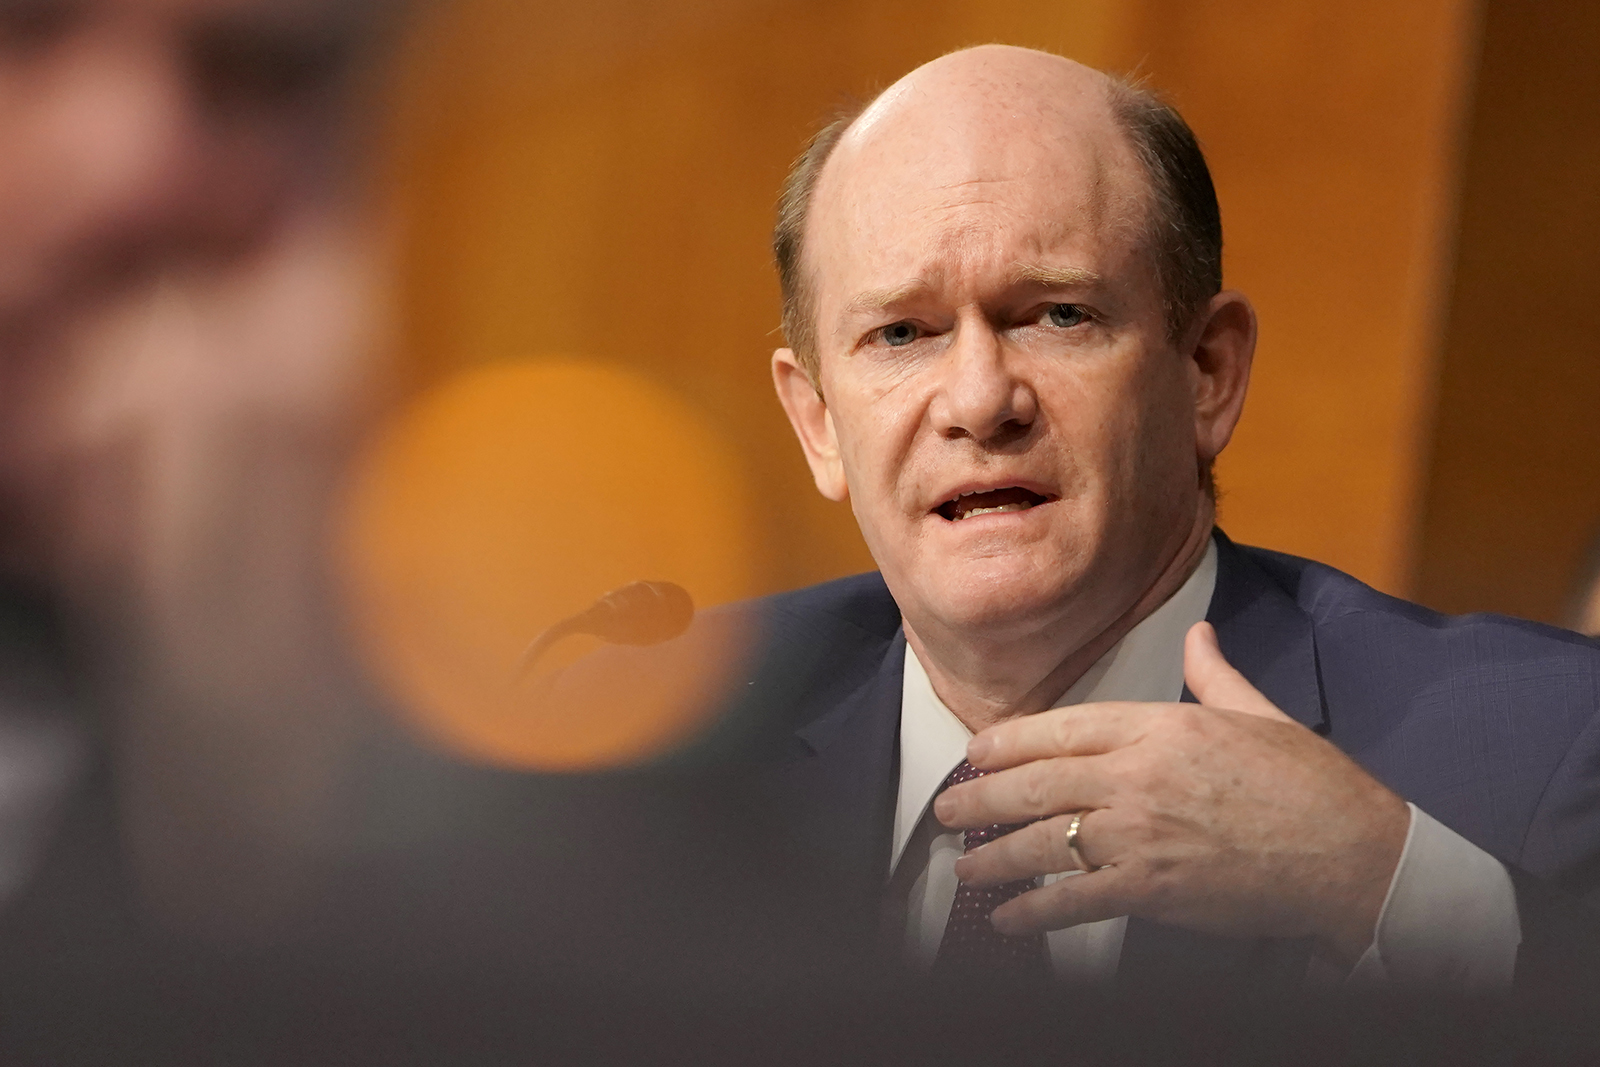 Sen. Chris Coons asks a question to Secretary of State Mike Pompeo during a Senate Foreign Relations to discuss the Trump administration's FY 2021 budget request for the State Department on July 30, in Washington.